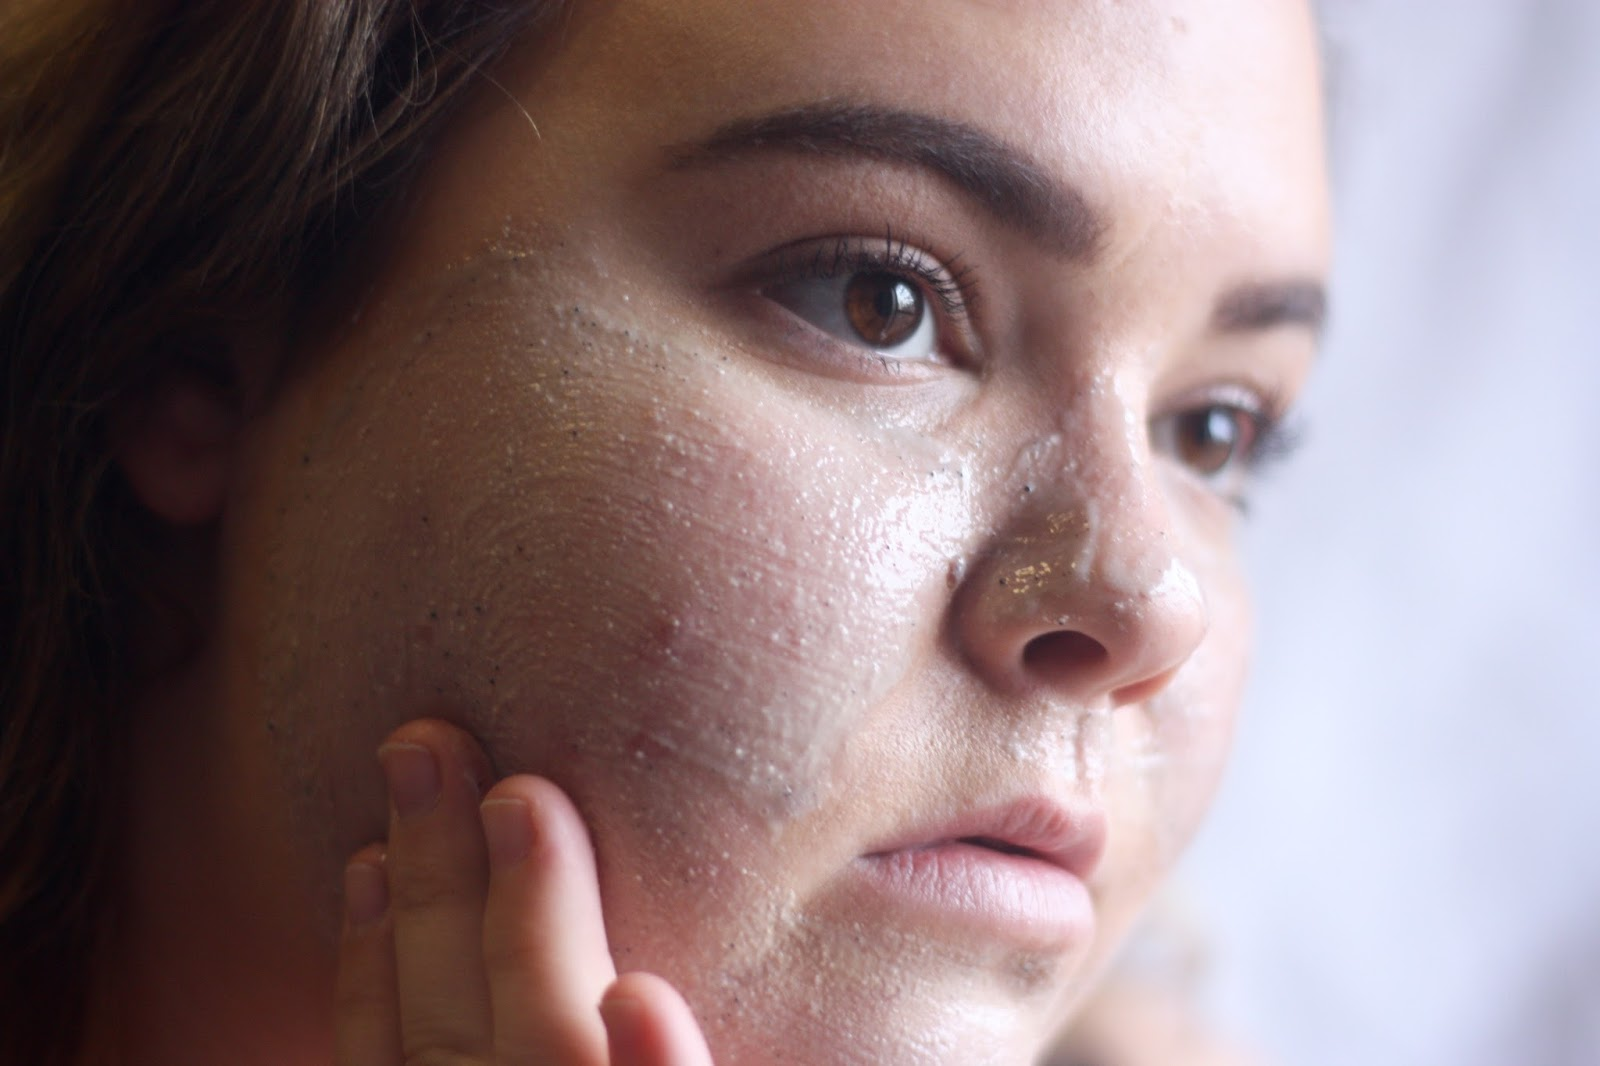 8 skin sabotages you are making, skin problems, how to get rid of pimples, best skin products for face, natalie craig, beauty blogger, chicago, midwest blogger, plus size fashion blogger, surprising skin sabotages, mimosas, brunch, coffee, chocolate